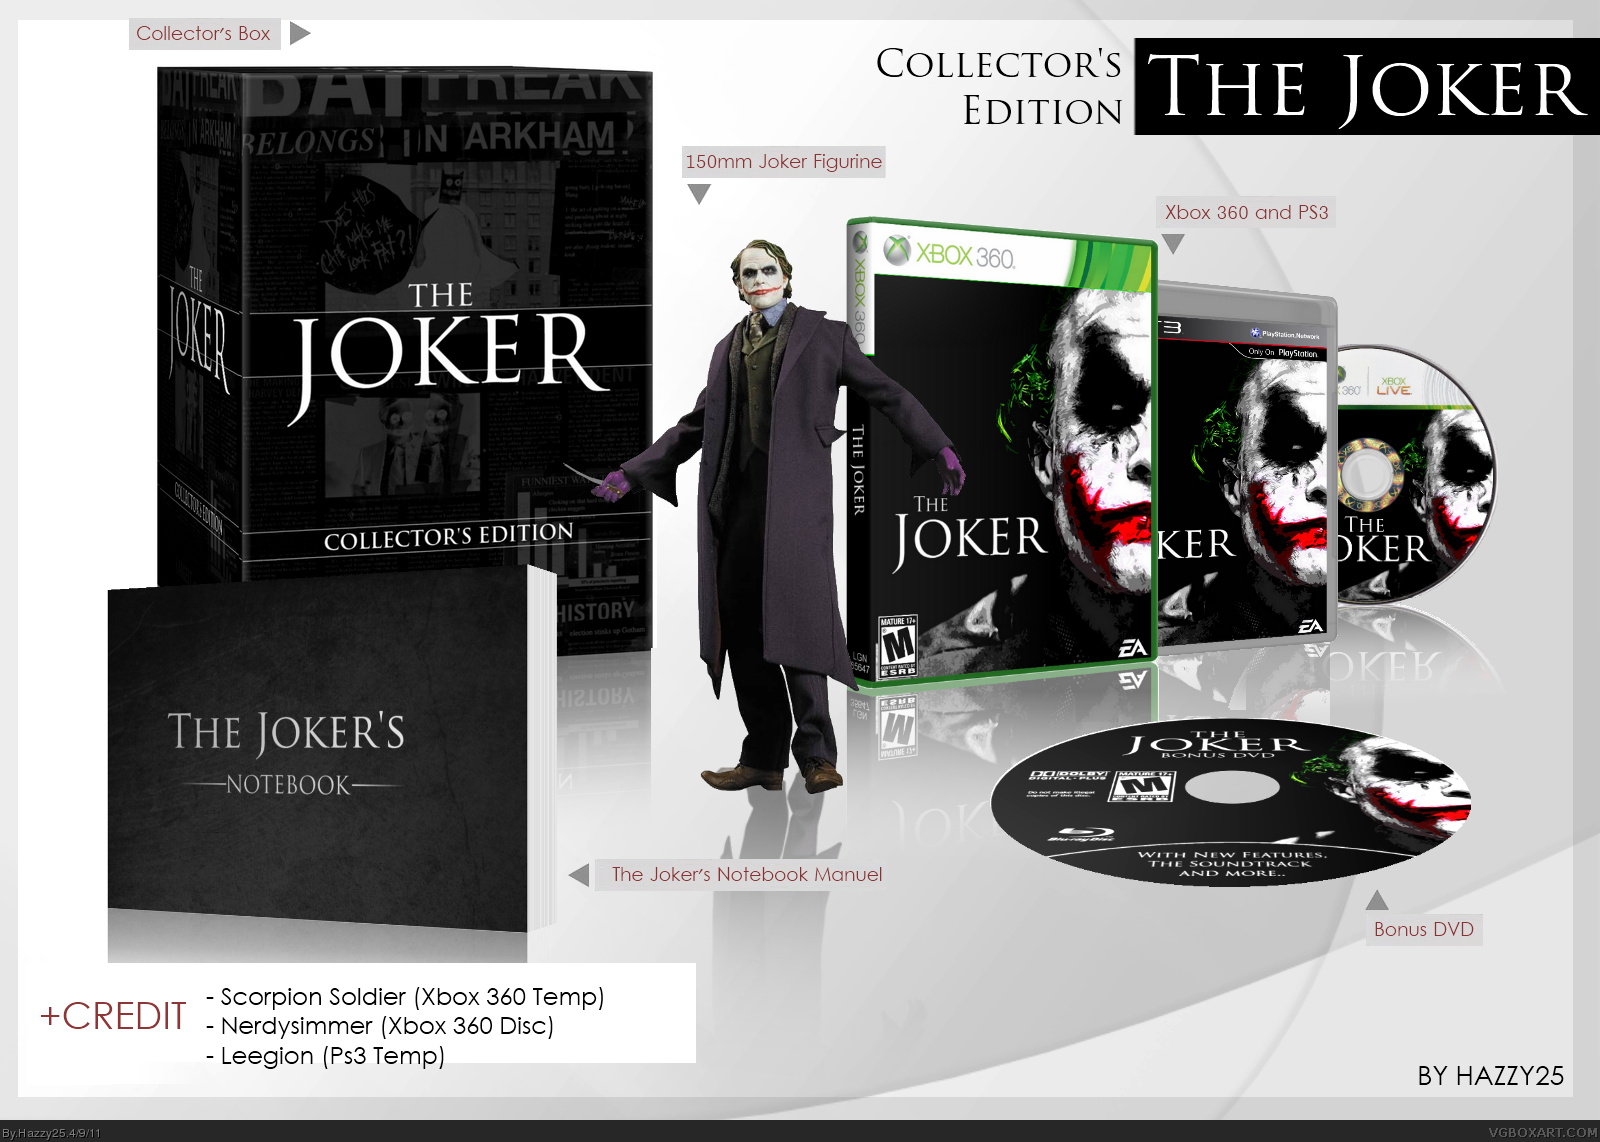 The Joker Collector's Edition box cover